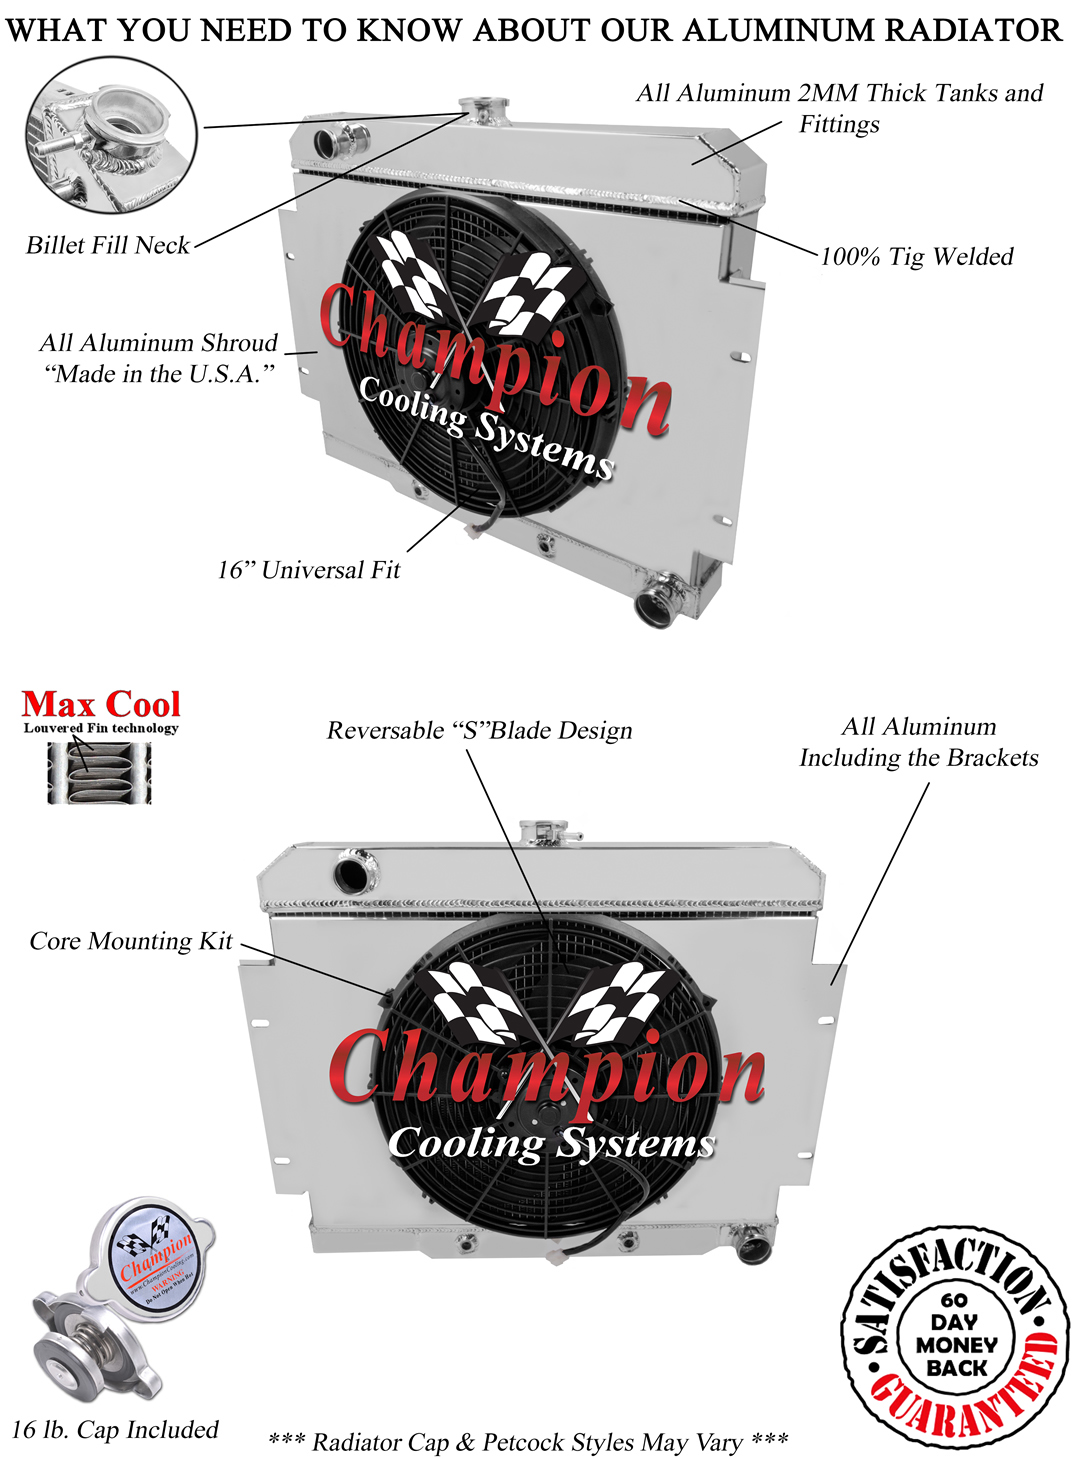 https://www.championcooling.com/photos/Photos%20White/With%20Fans/W-Shroud/1919/FS1919_white_Diagram_Champion.jpg